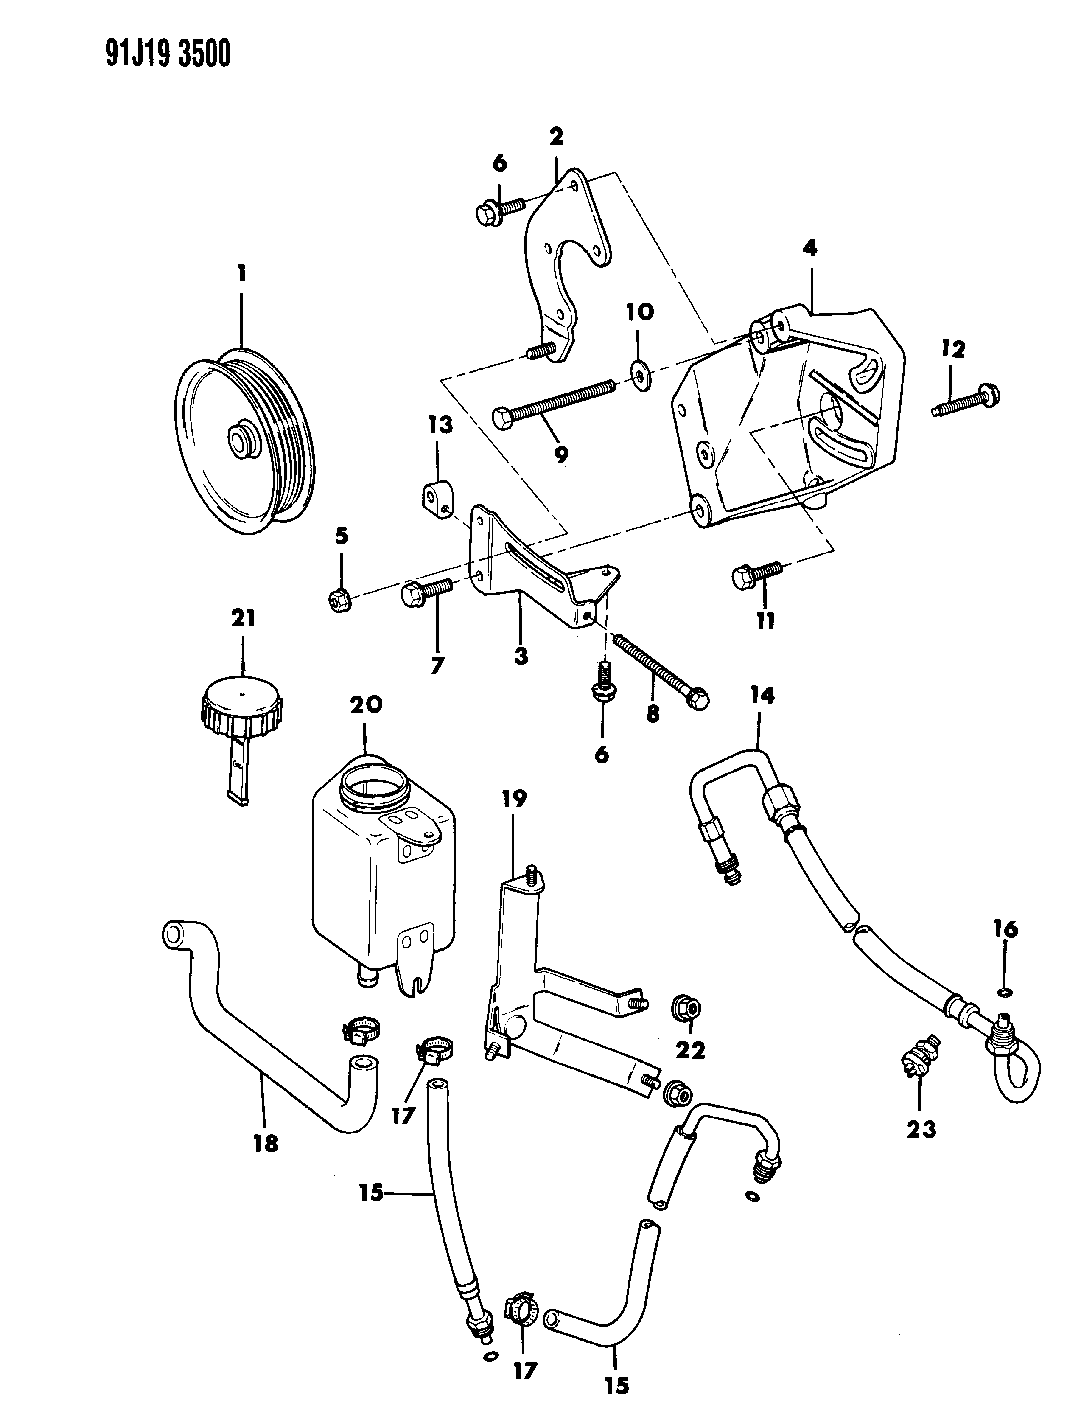 1991 Jeep Wrangler Pump Mounting Power Steering Engine Diagram